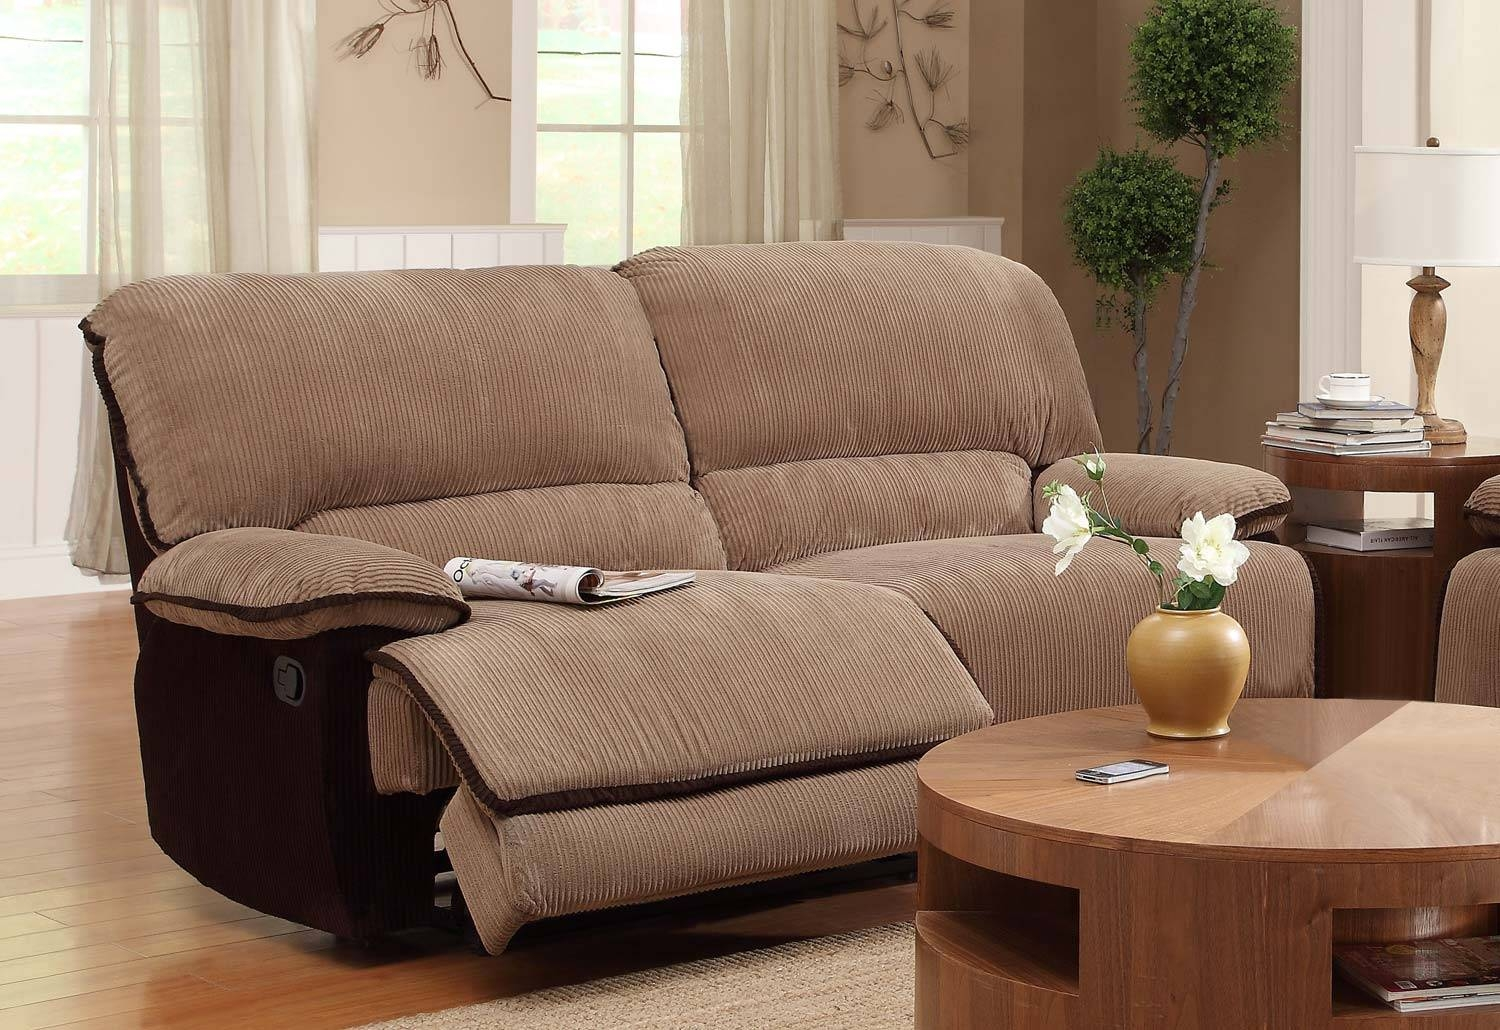 Homelegance Grantham Sofa Dual Recliner - Brown - Corduroy 9717-3 in Brown Corduroy Sofas (Image 7 of 15)